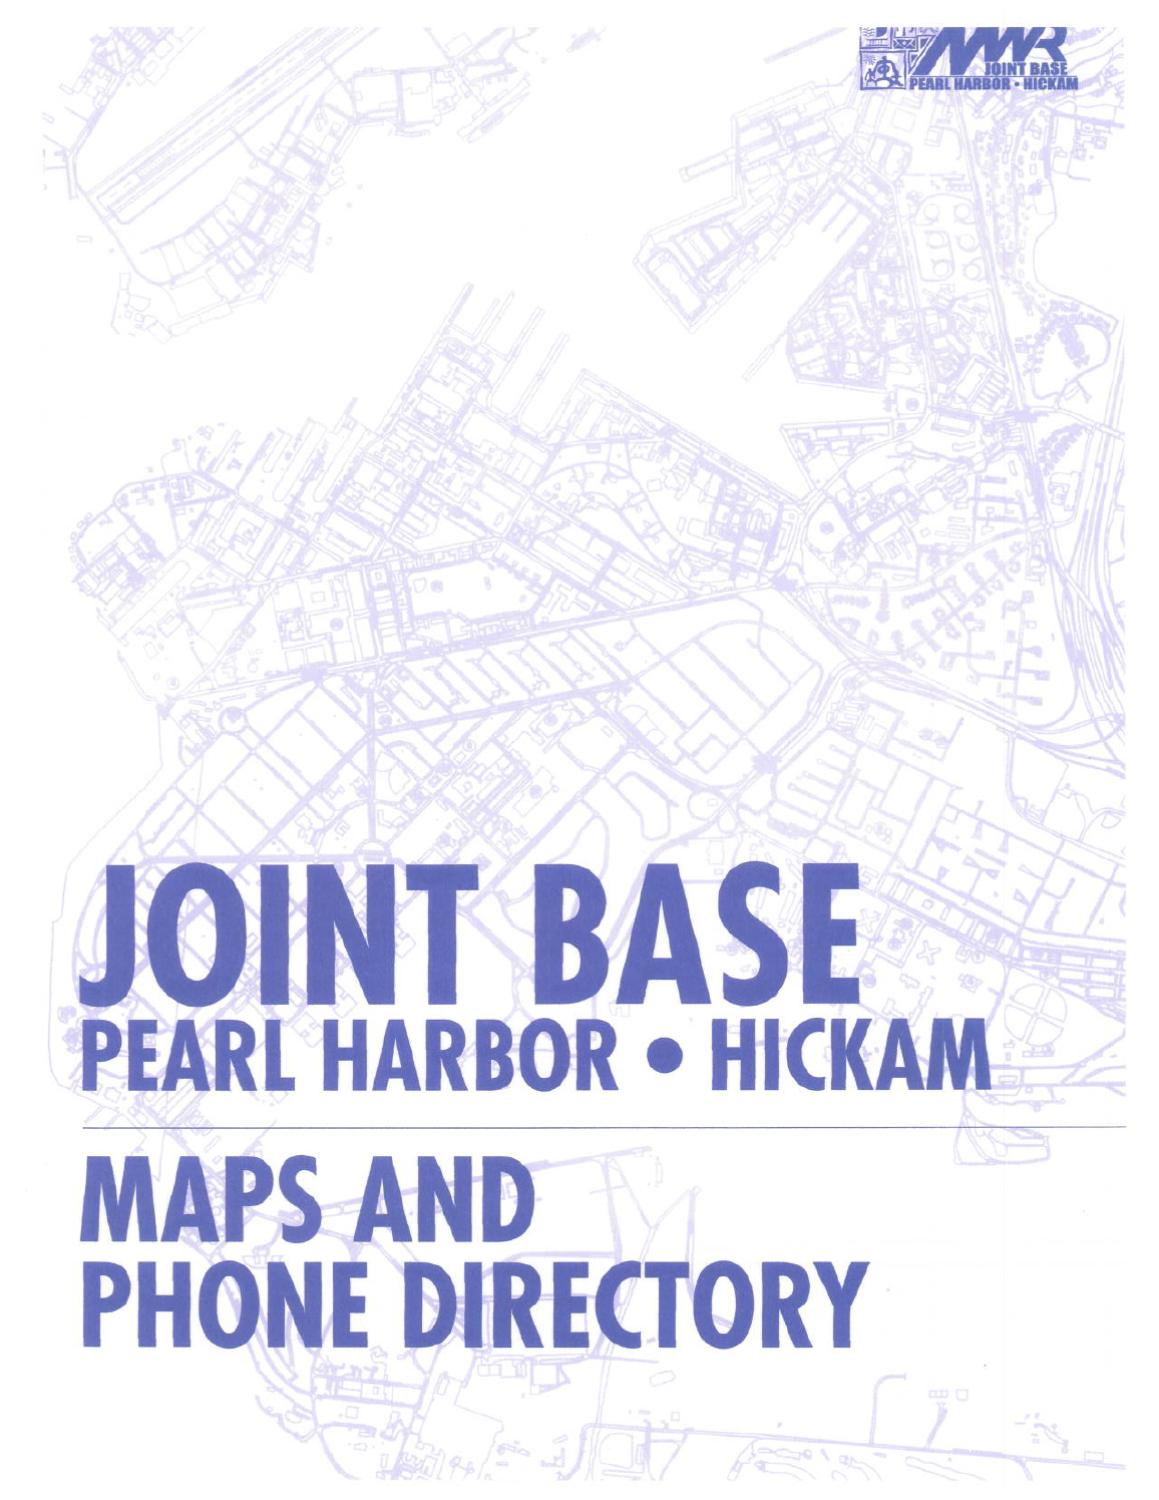 Joint Base Pearl Harbor Hickam Maps and Directory   Attachment by